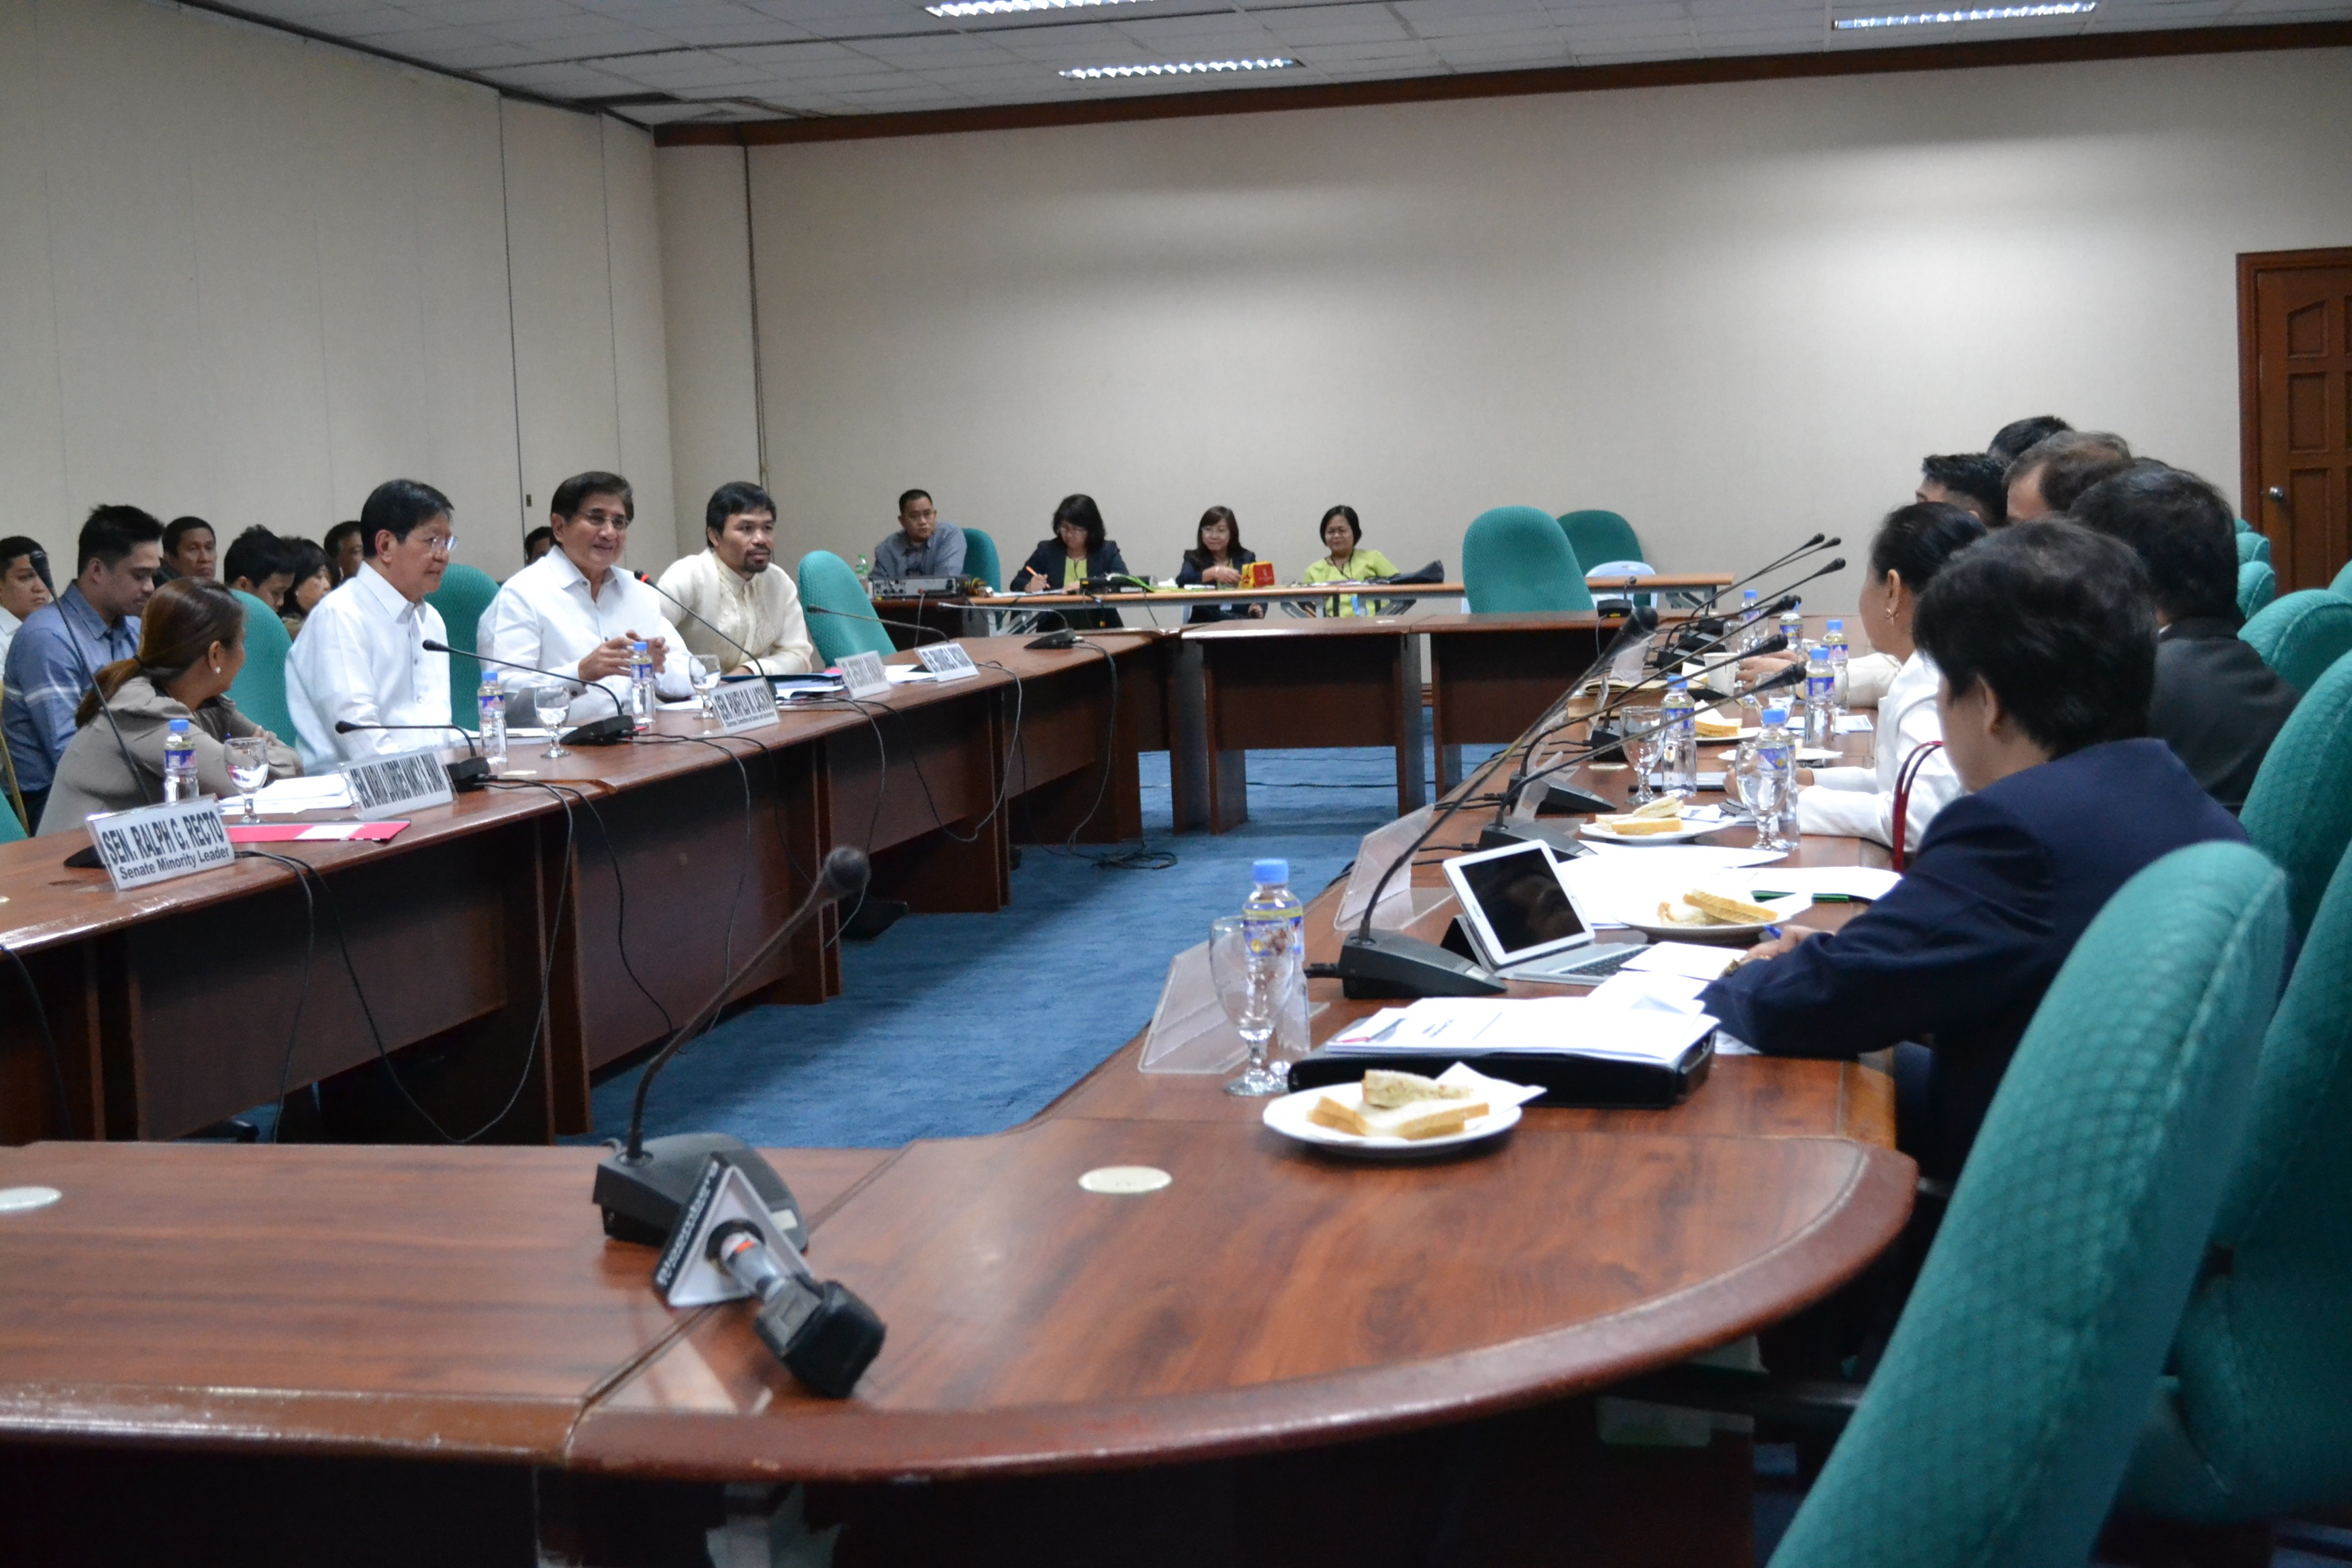 UP IN THE AIR. 'There will be no renewal of e-gaming licenses. We found out that over 100 outlets were in violation of distance requirements,' PAGCOR's Domingo tells senators. Photo by Chrisee Dela Paz/Rappler